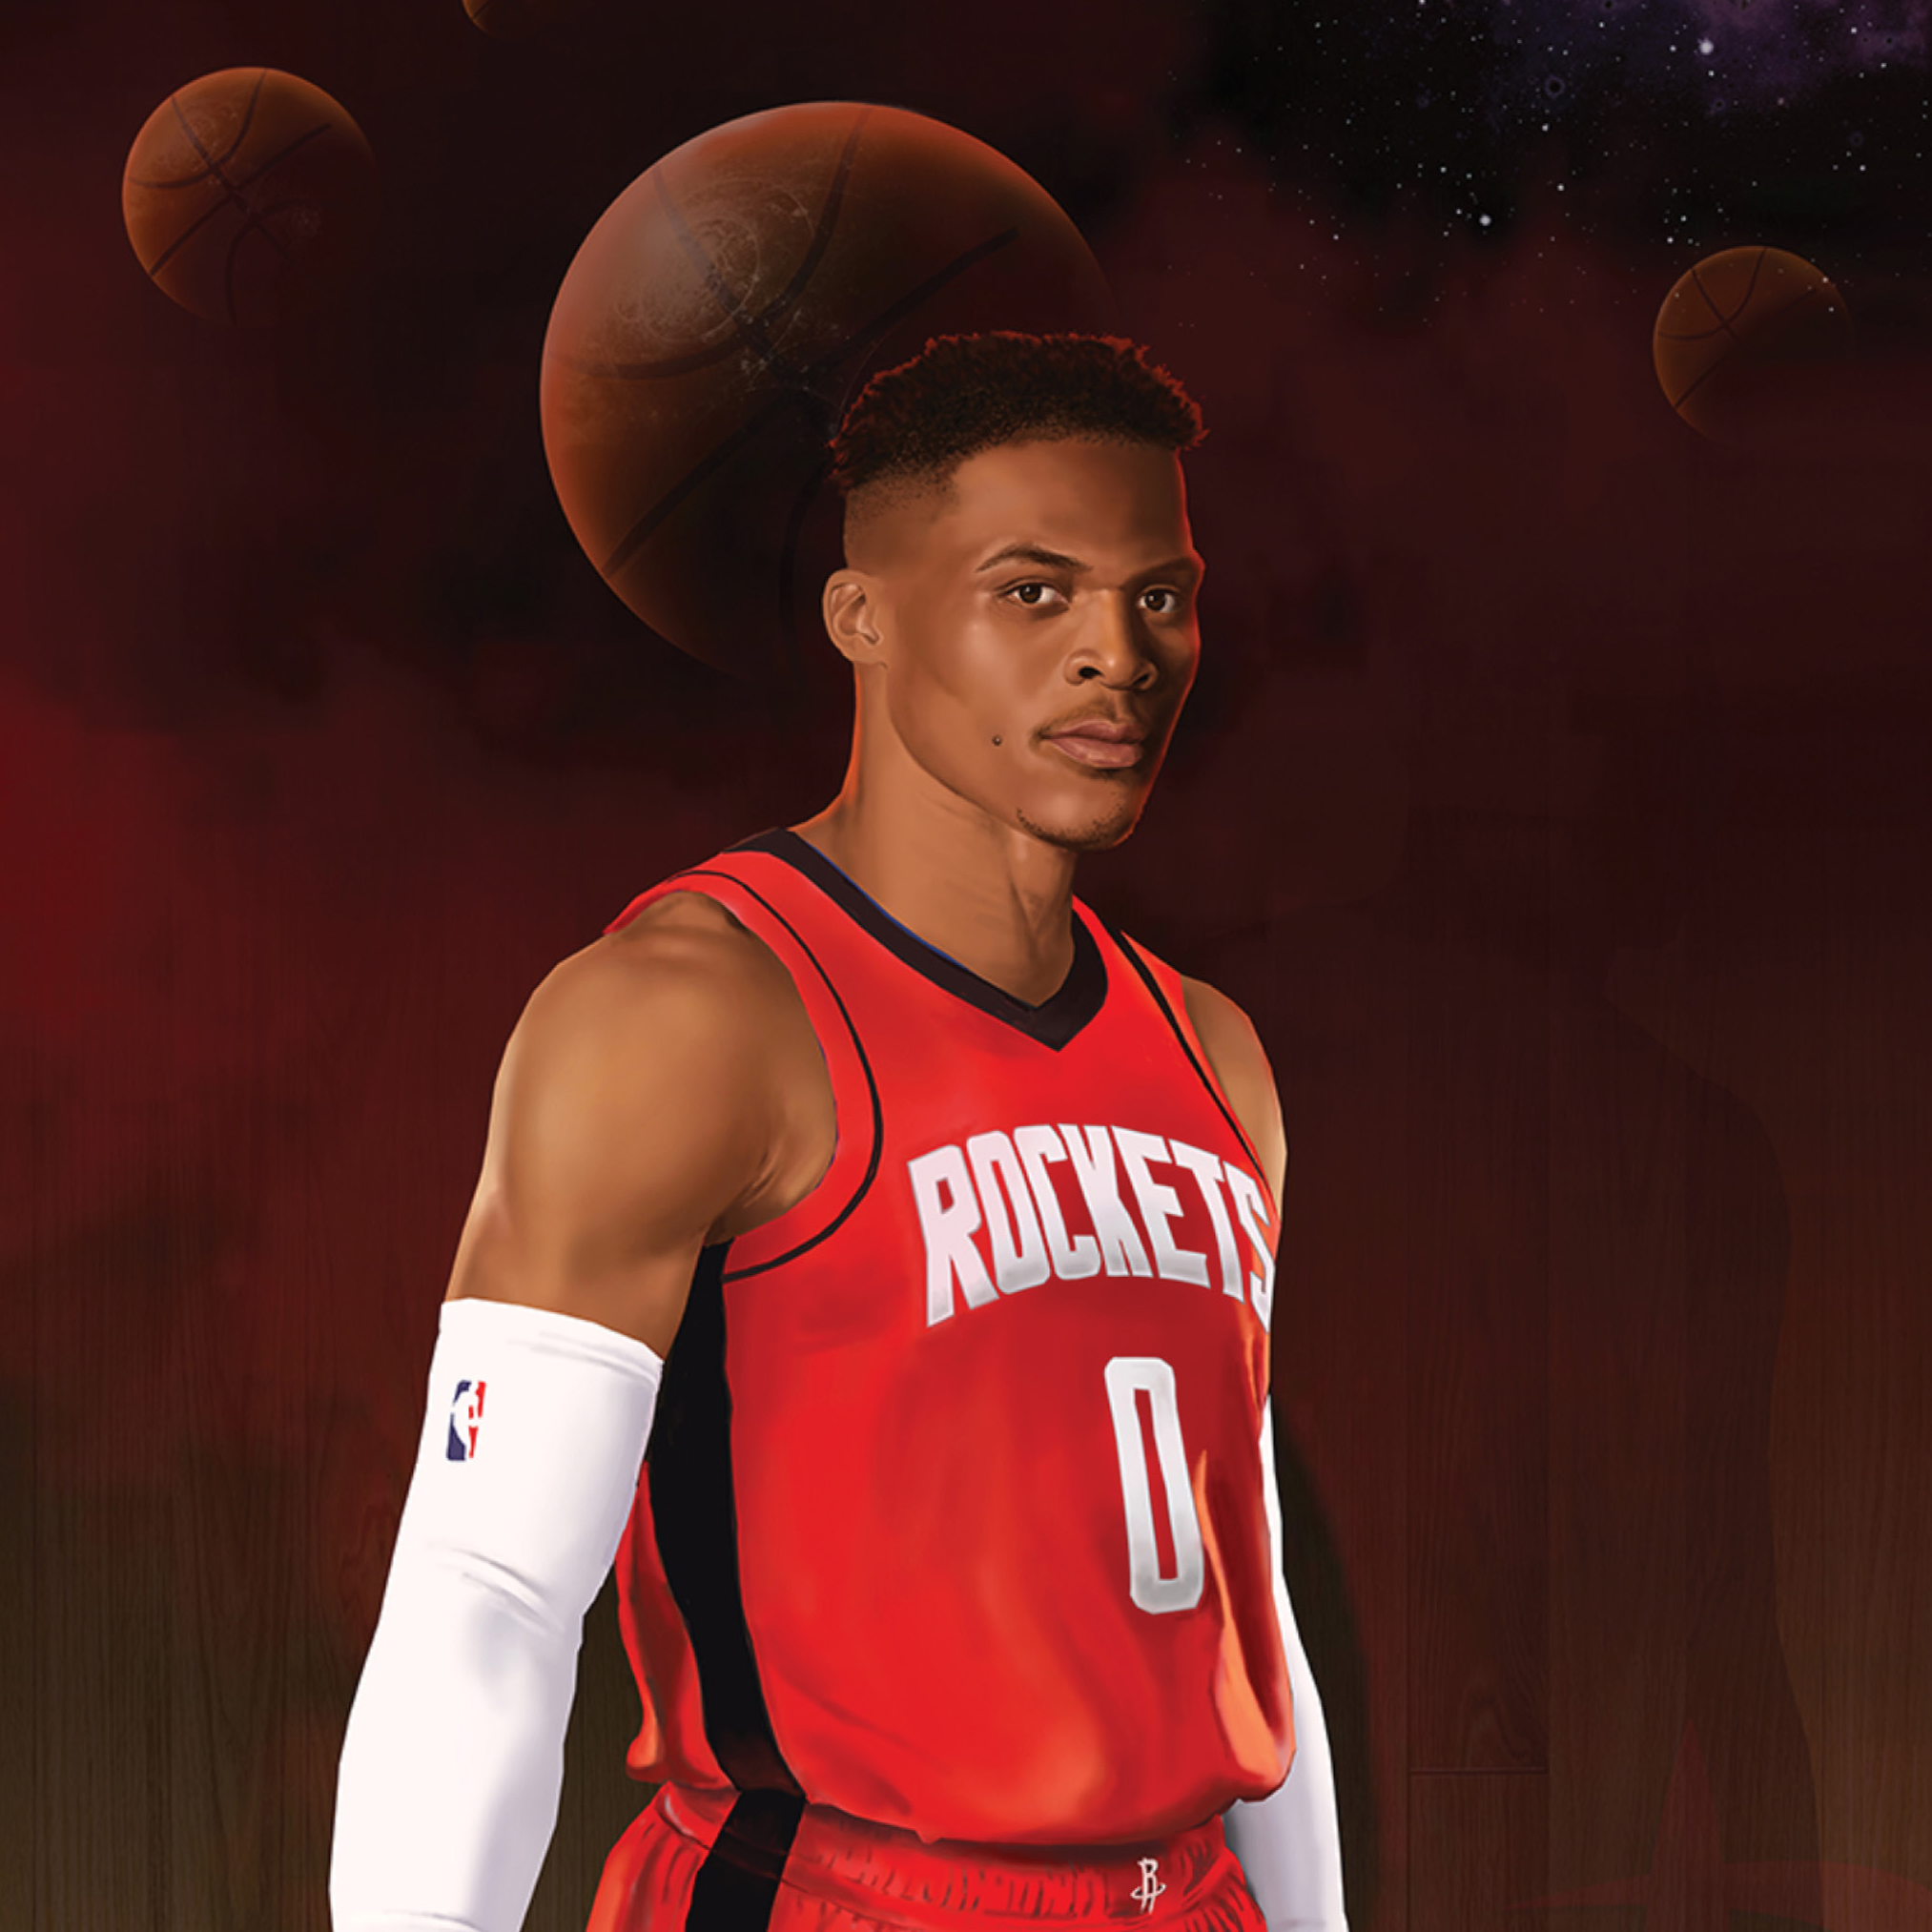 Russell Westbrook stands basketball in hand, with a galaxy-like background including planet basketballs.